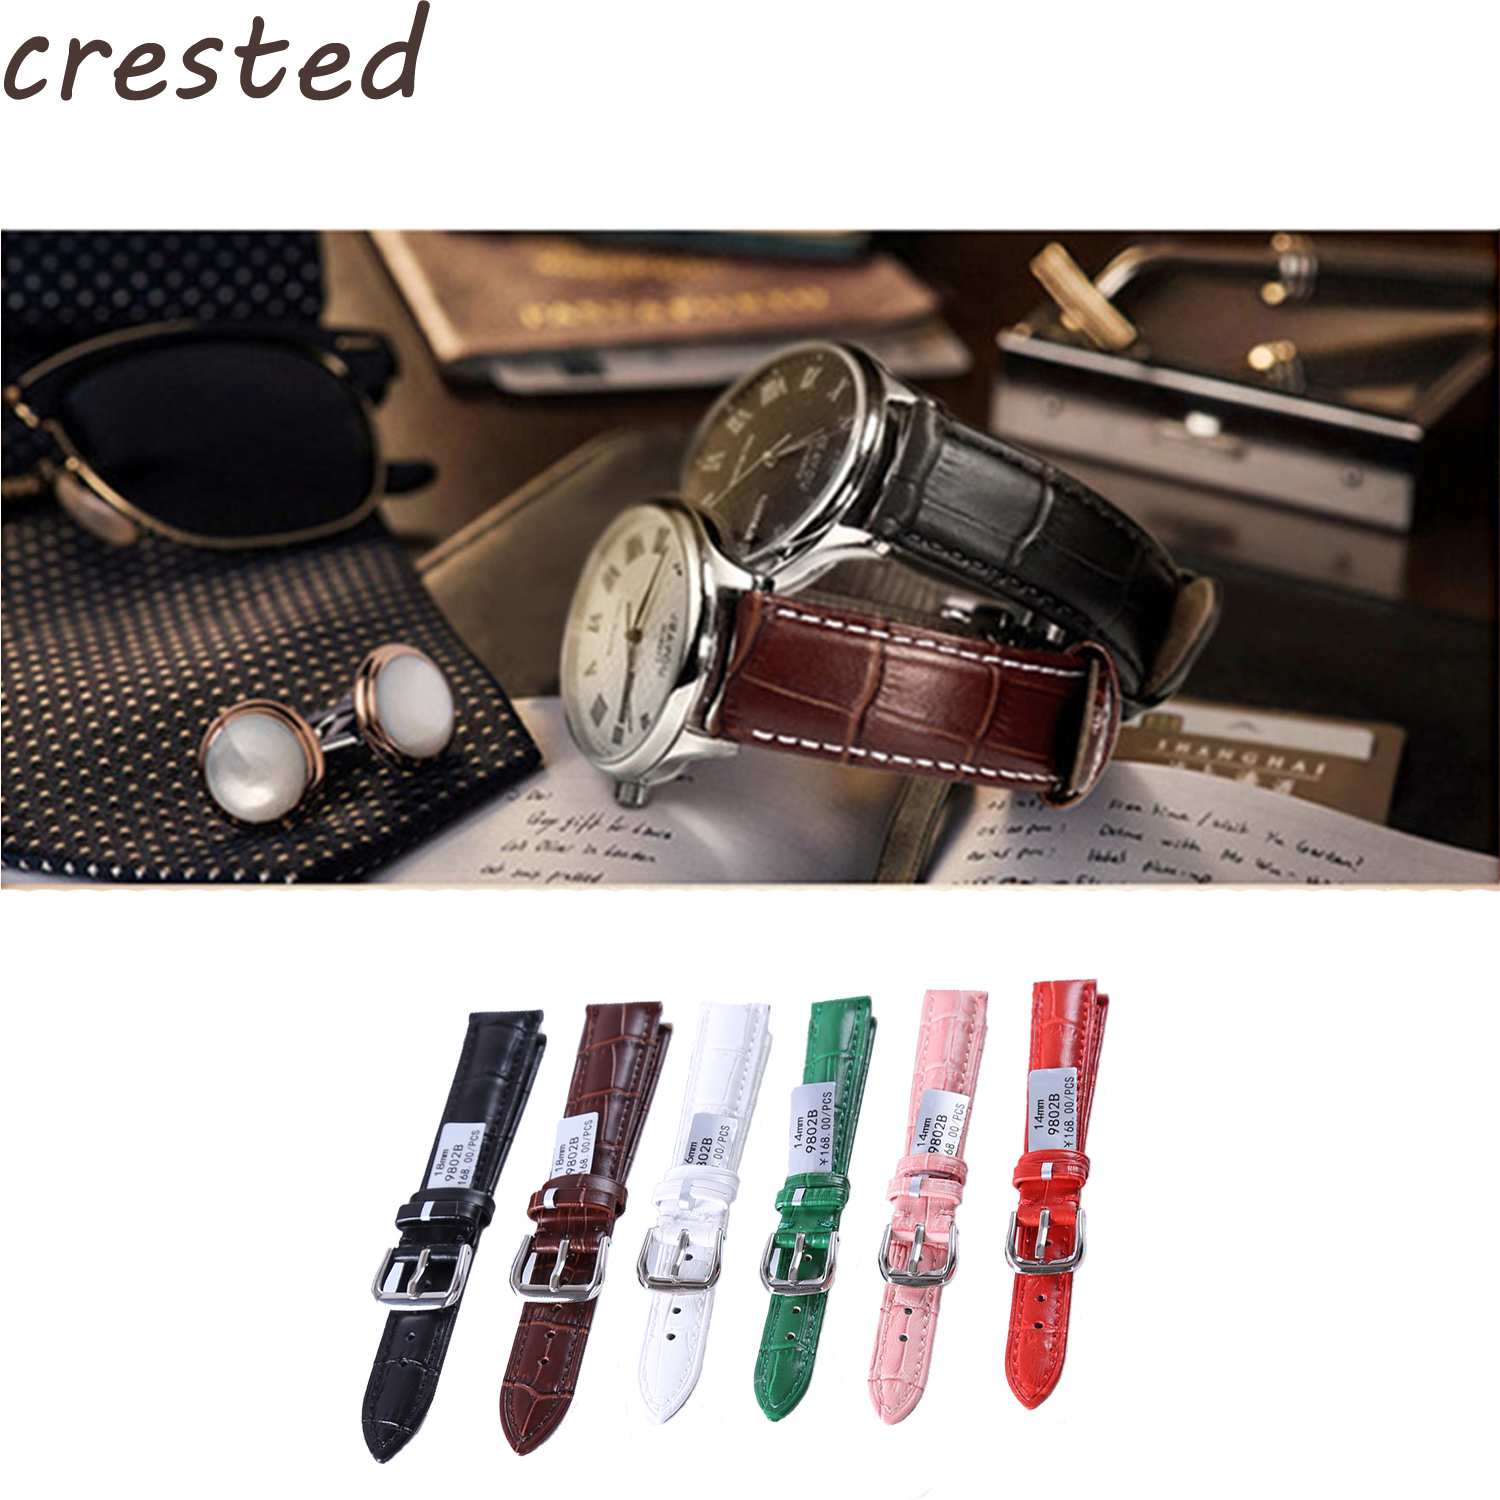 CRESTED genuine leather strap Seven colors watch bracelet belt new watch strap band 18mm 20mm 22mm watch accessories wristband все цены